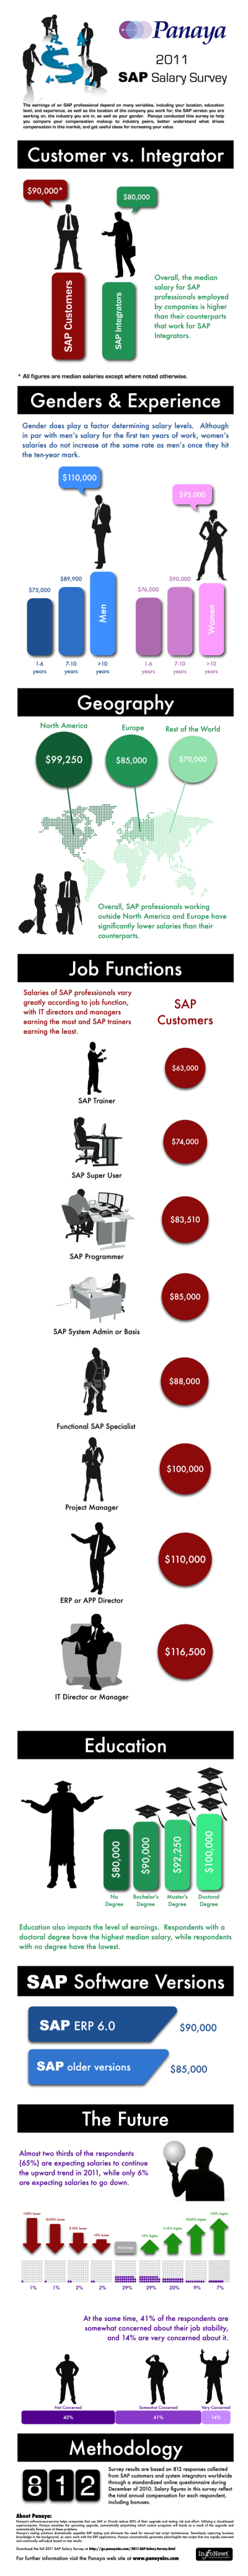 The 2011 SAP Salary Survey Infographic